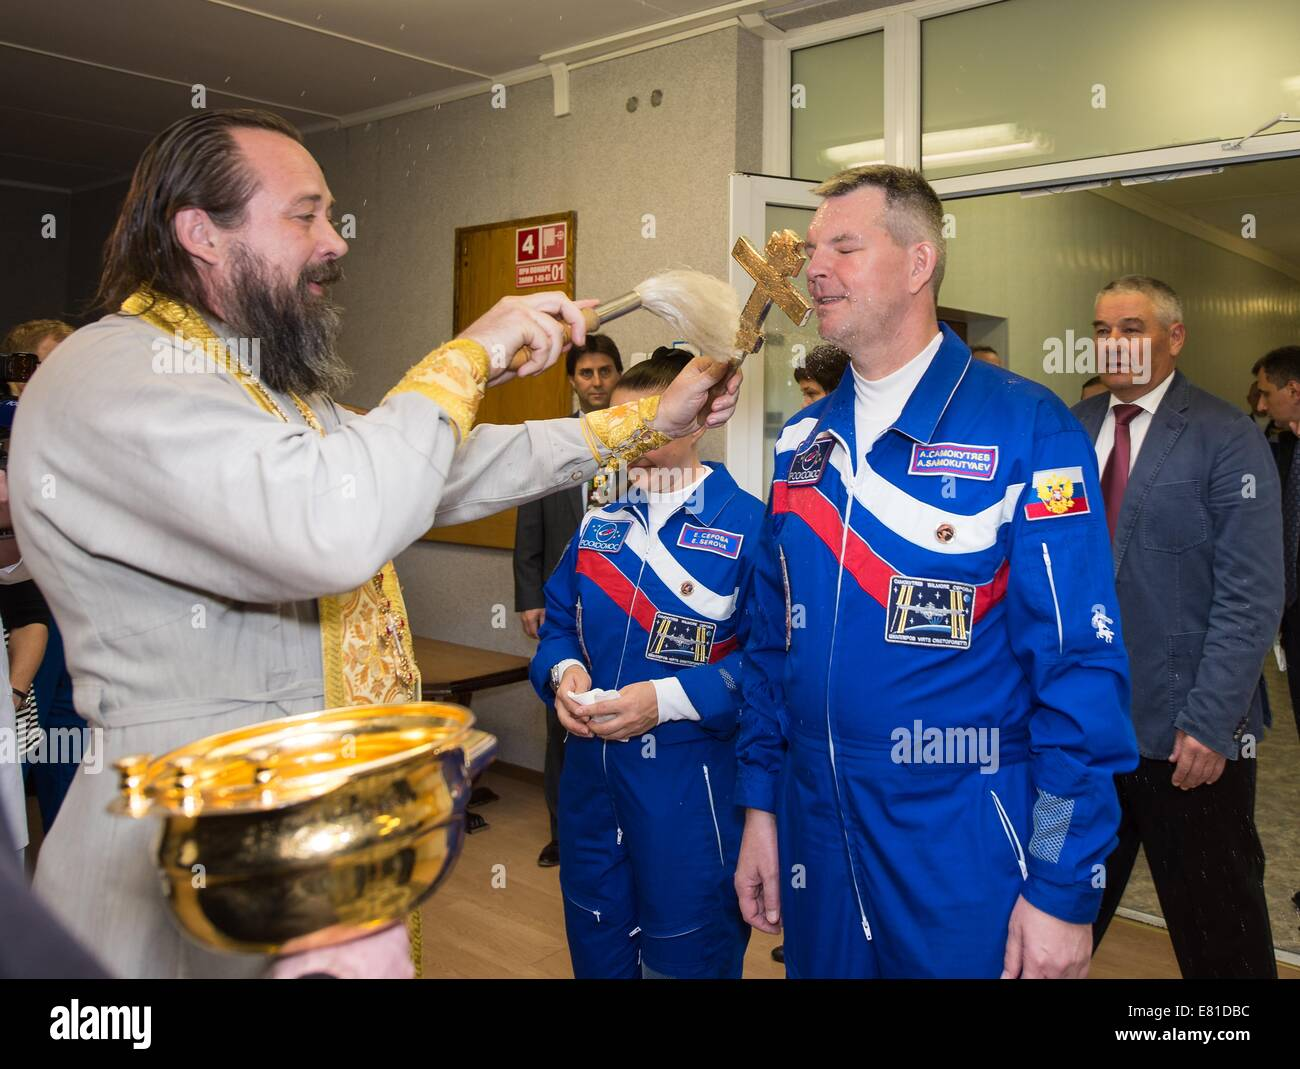 International Space Station Expedition 41 Soyuz Commander Alexander Samokutyaev of the Russian Federal Space Agency - Stock Image